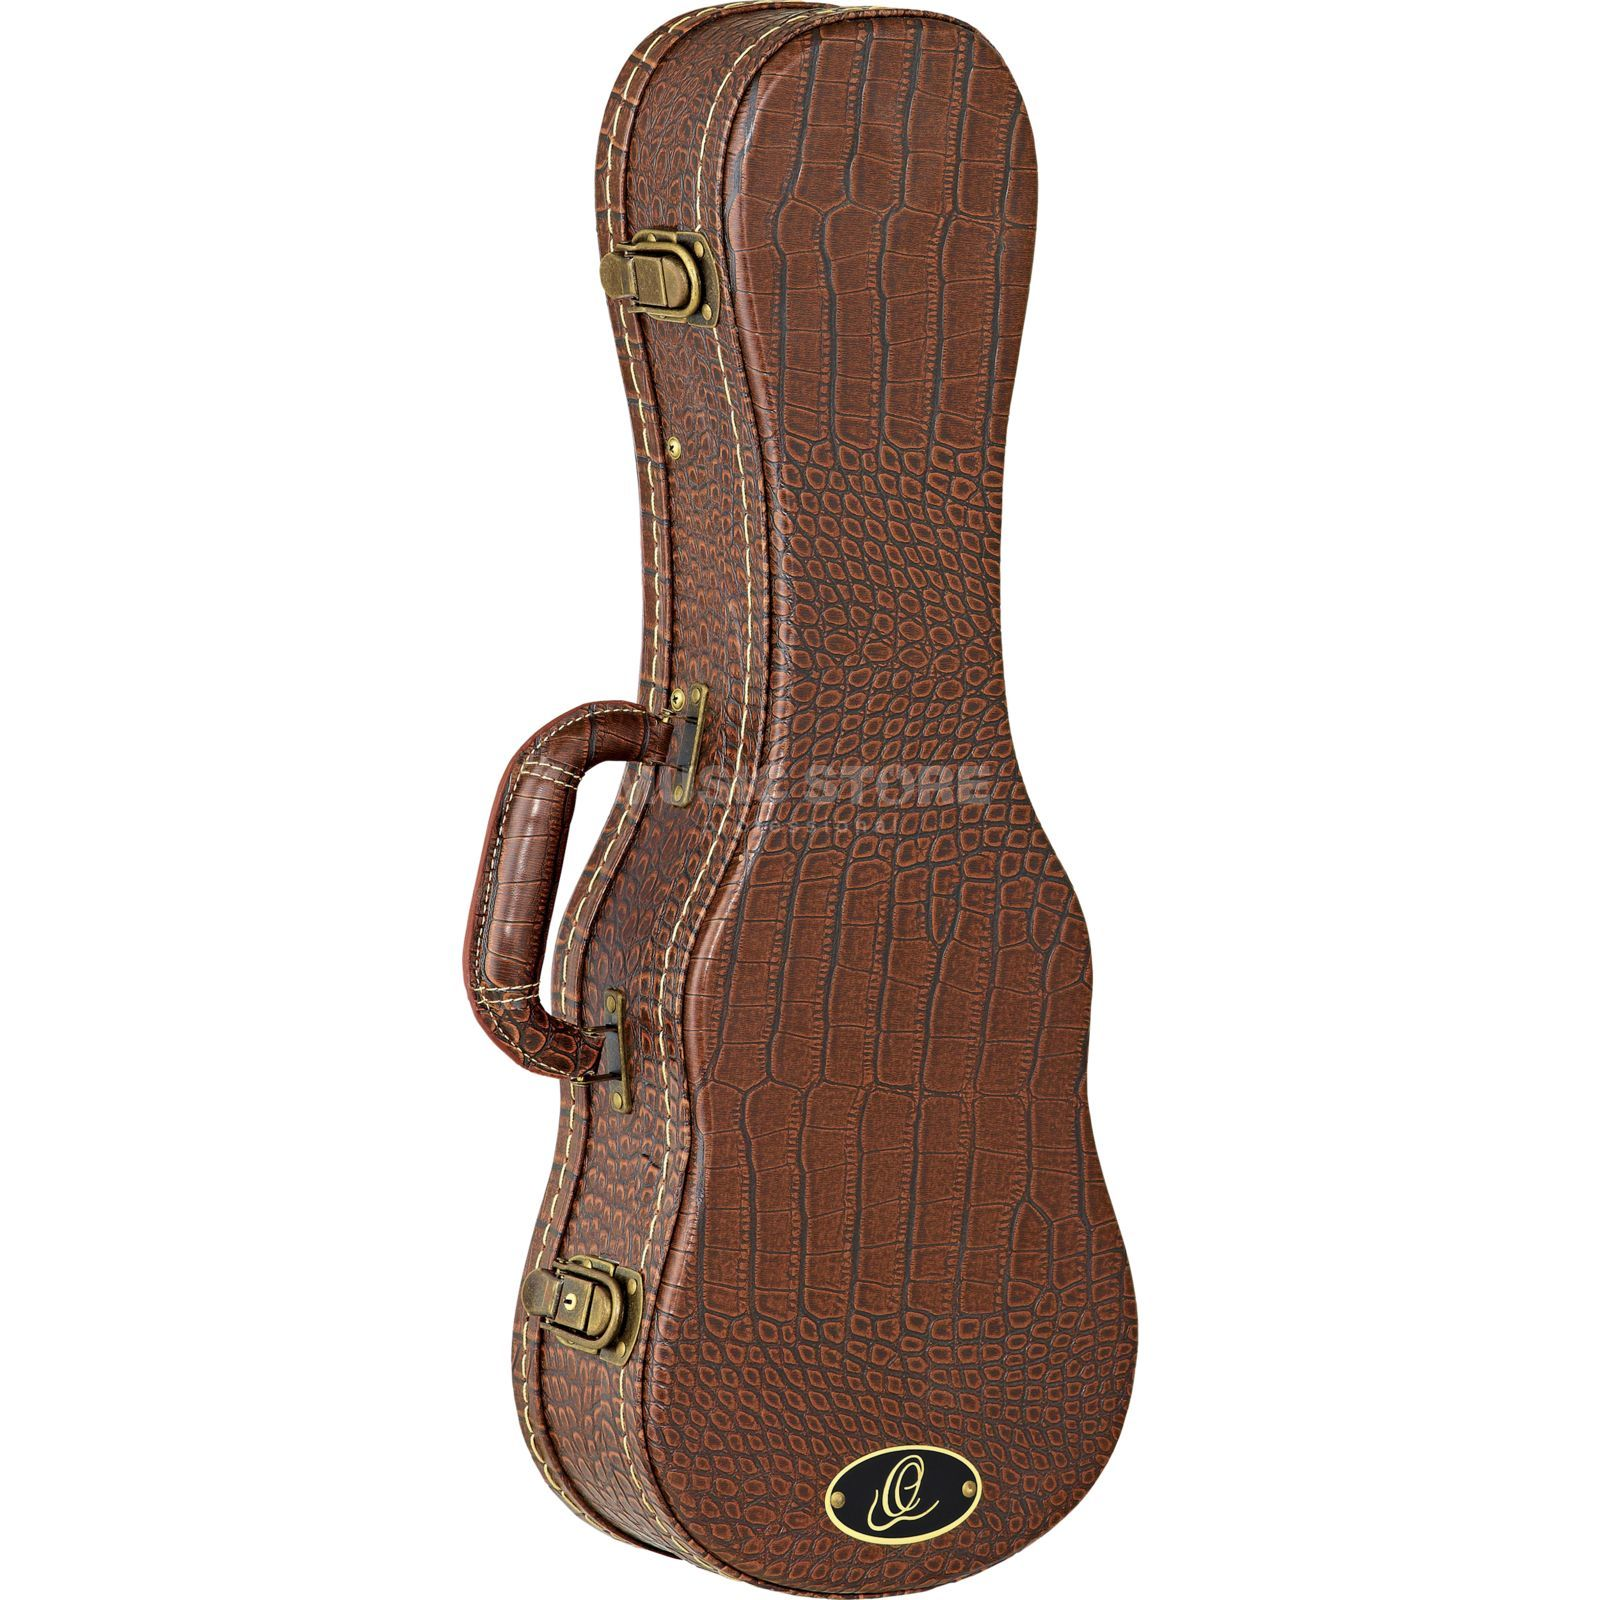 Ortega OUC-SO Ukulele Case Soprano Brown Croco Finish Produktbillede